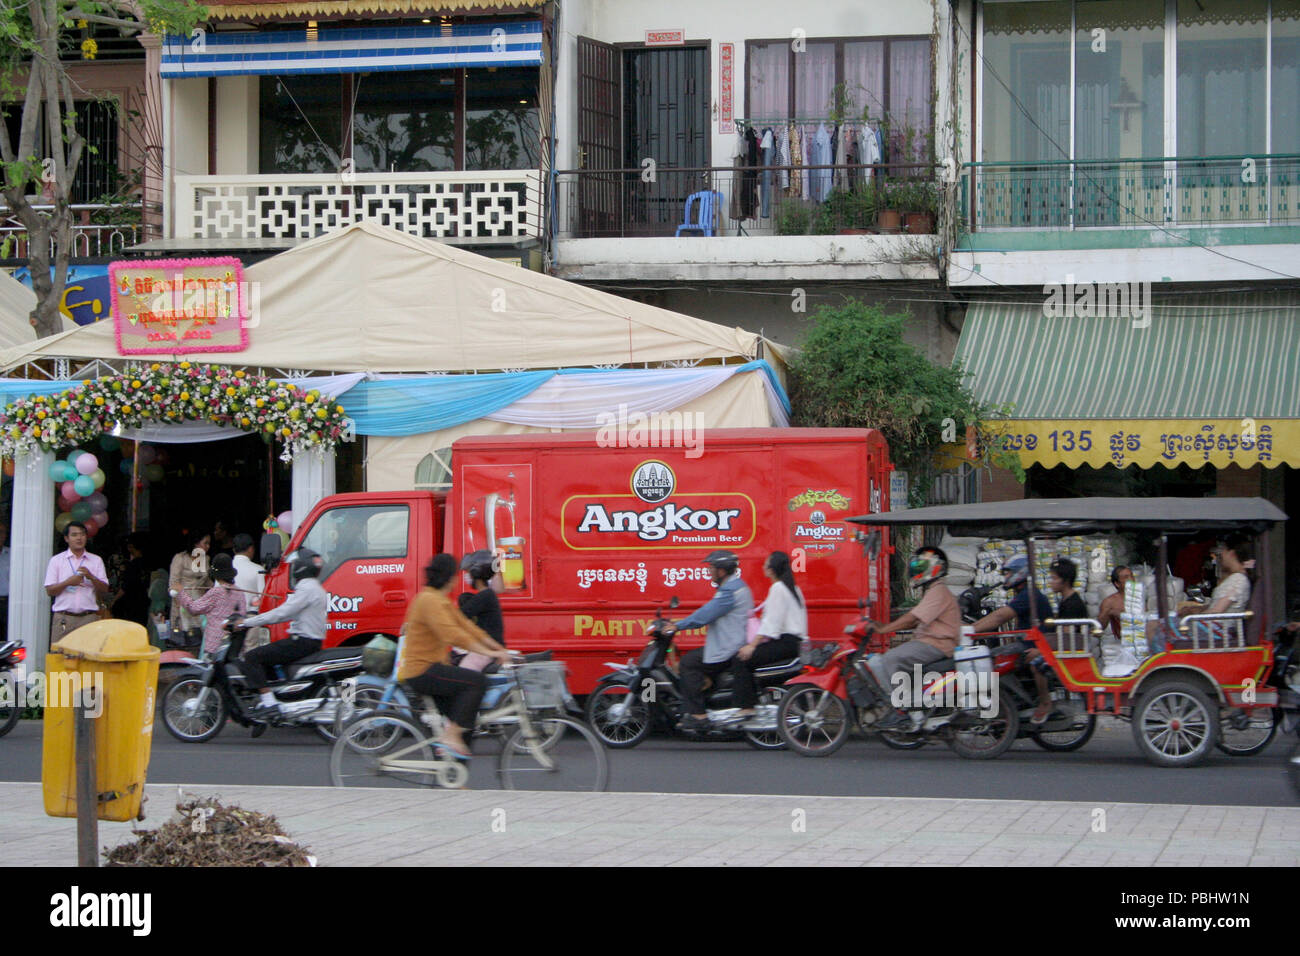 Red Van with Angkor Beer Graphics on Side in Busy Street, Phnom Penh, Cambodia - Stock Image